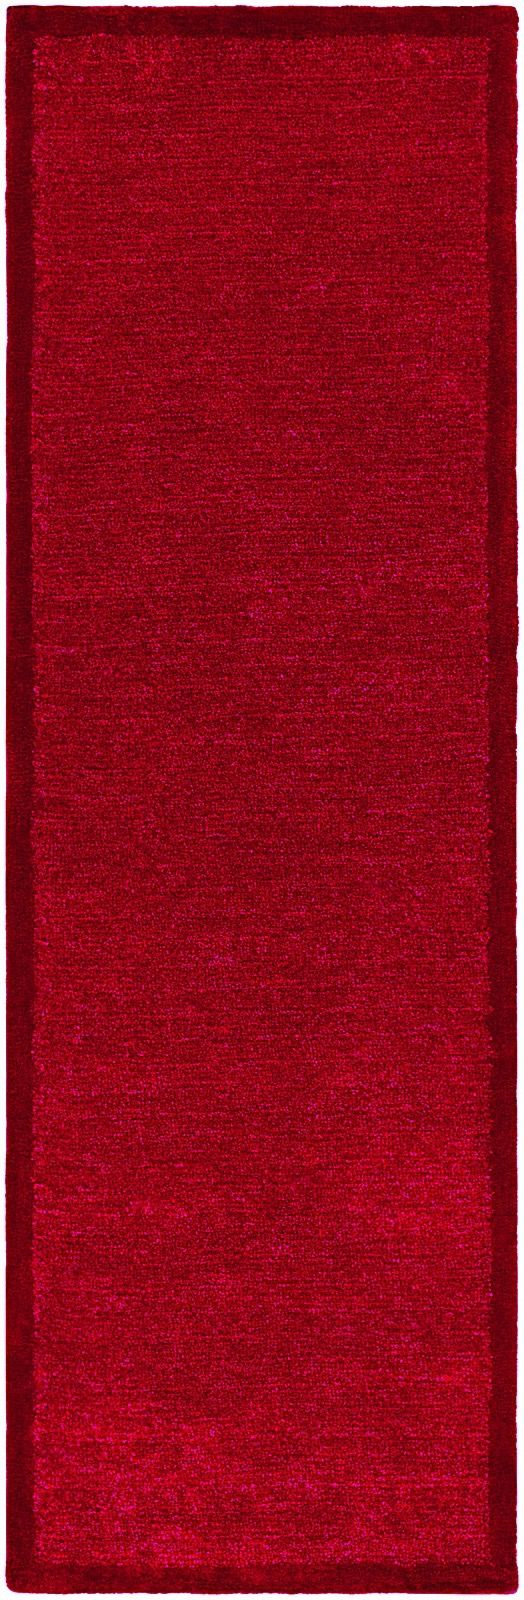 surya finley solid/striped area rug collection